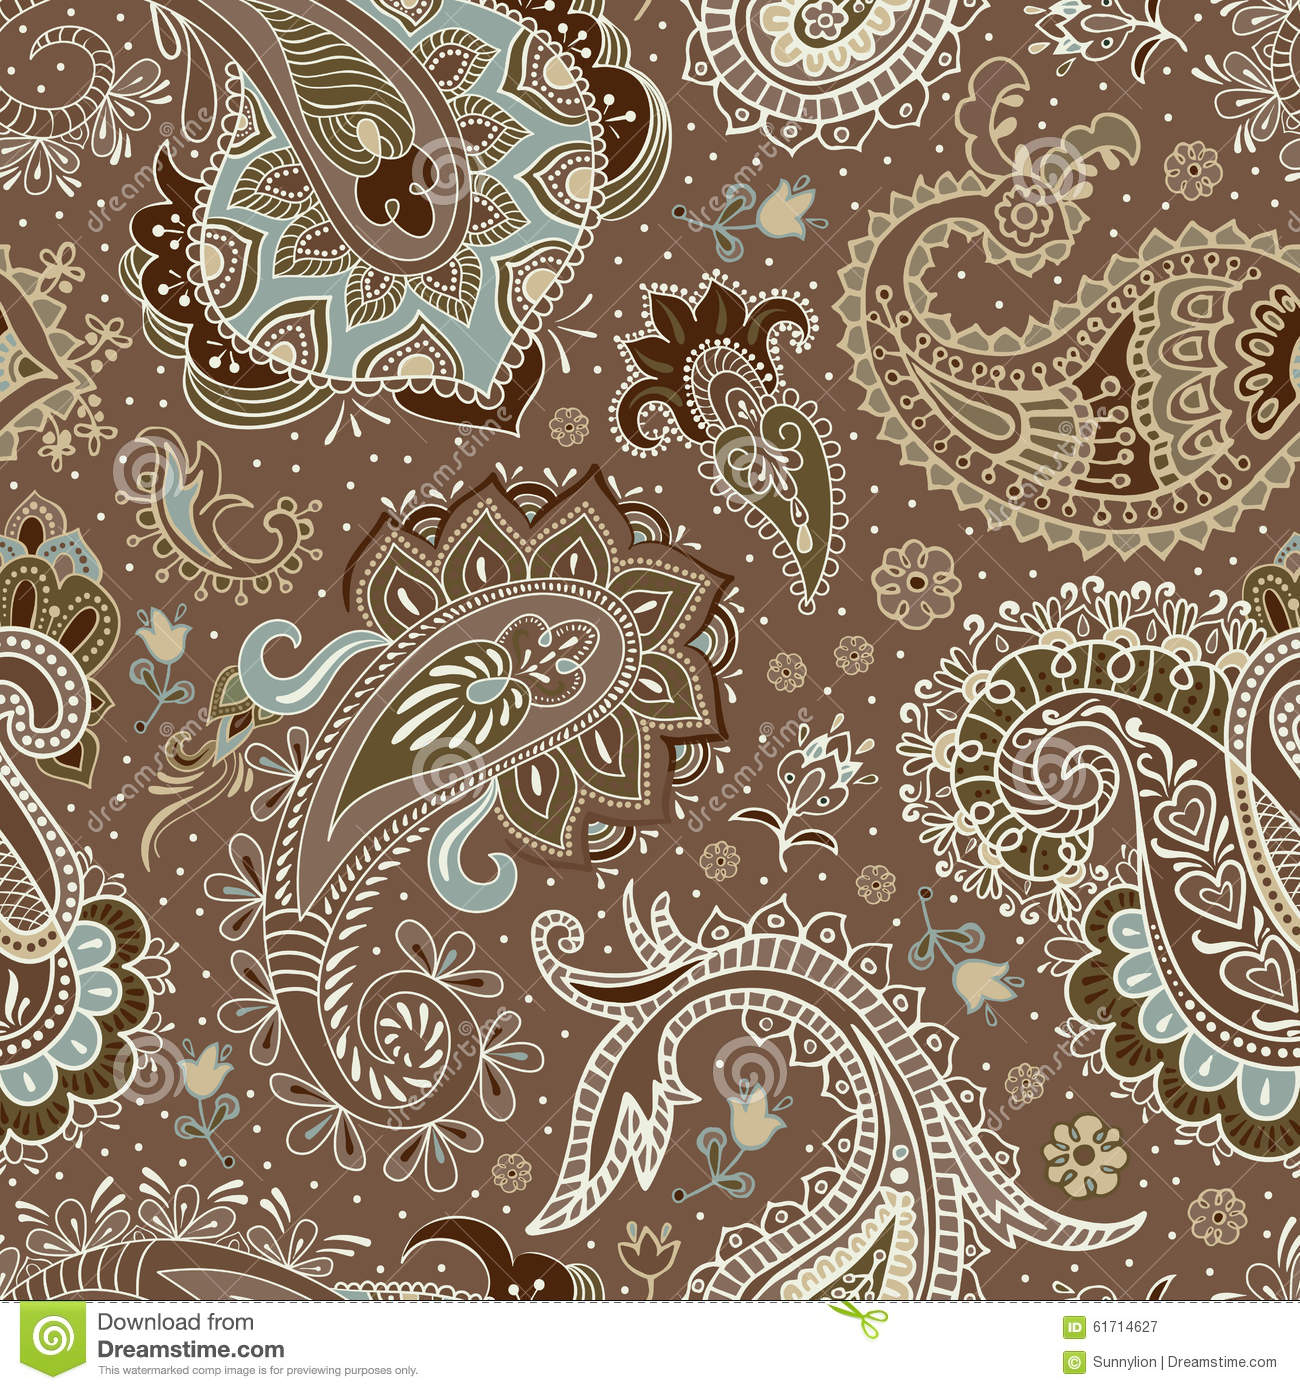 Vector Seamless Paisley Pattern Stock Vector - Image: 61714627